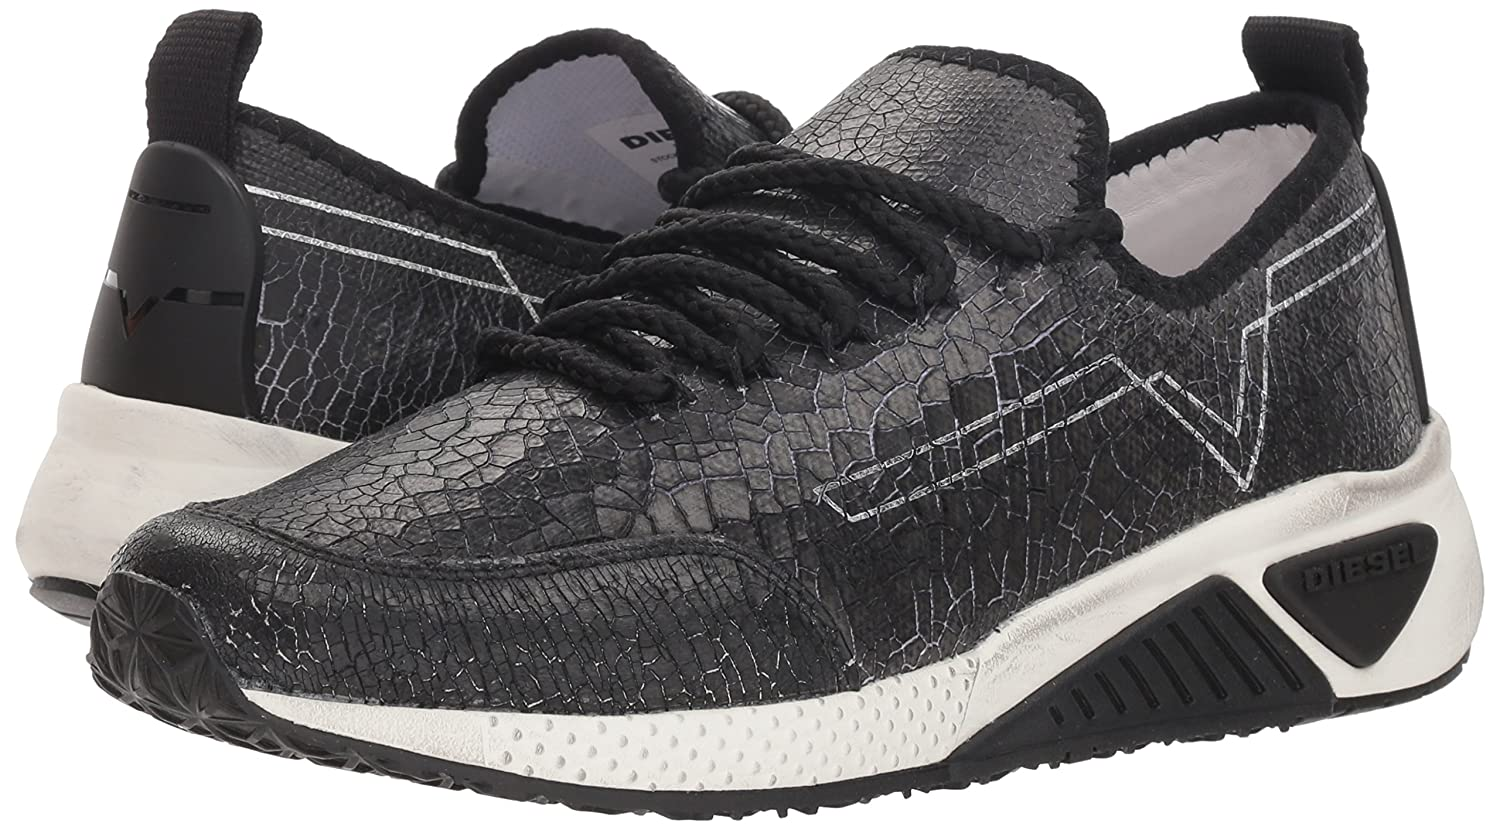 Diesel Women's SKB S-Kby Project US|Black Sneaker B077GFFF2X 8.5 B(M) US|Black Project fa9a2c